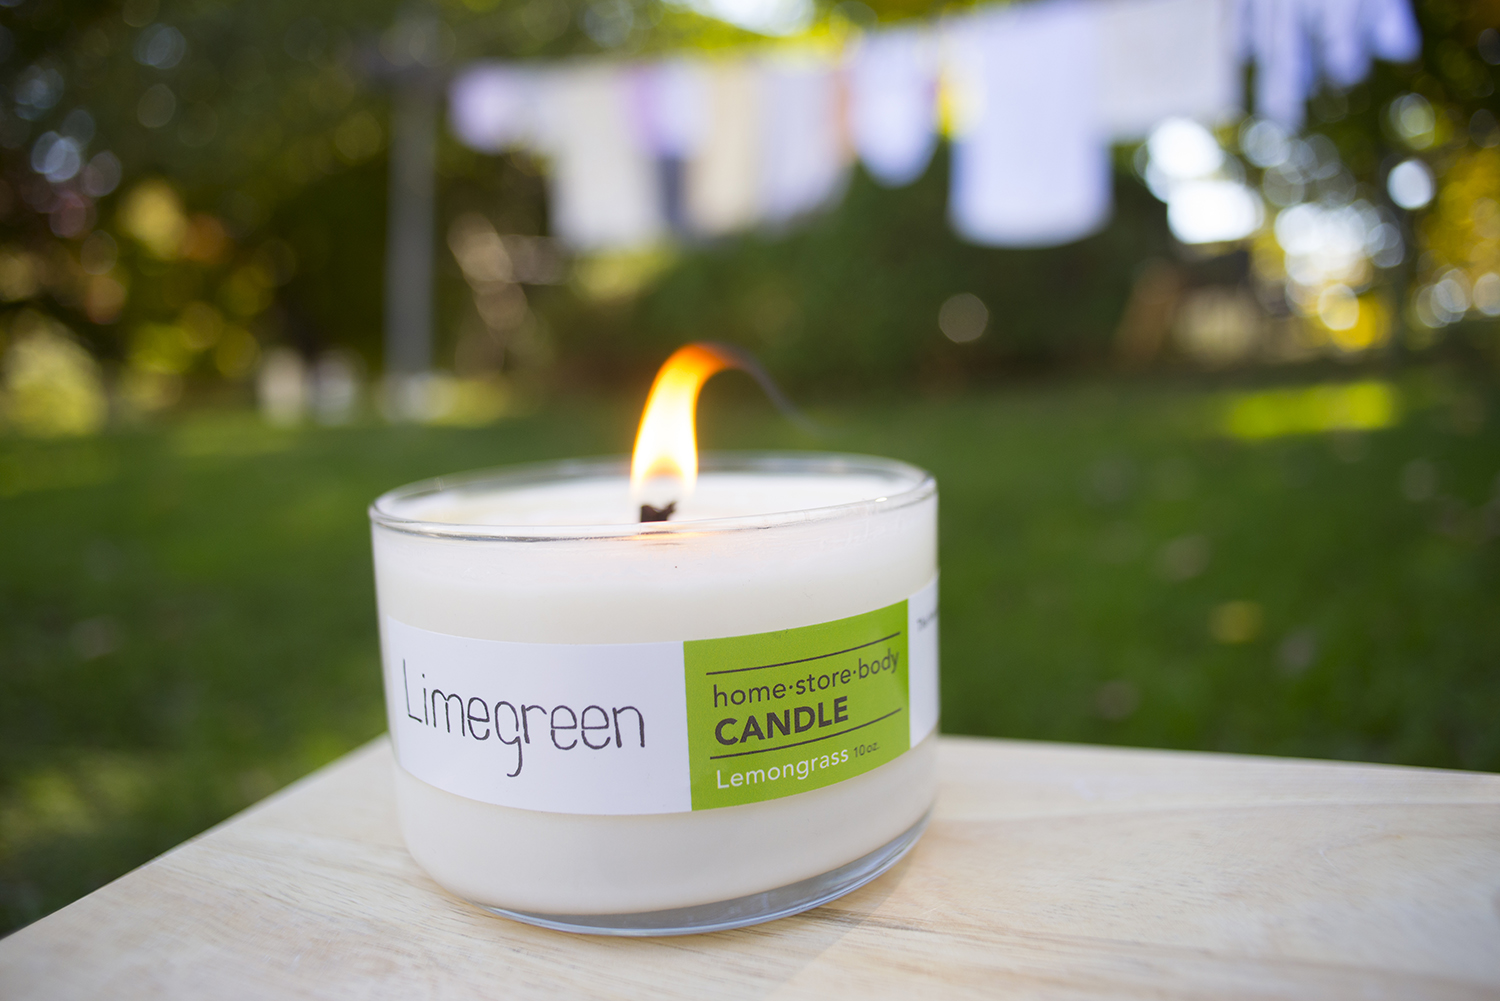 Lemongrass Candle from Limegreen.    brooklynlimegreen .com